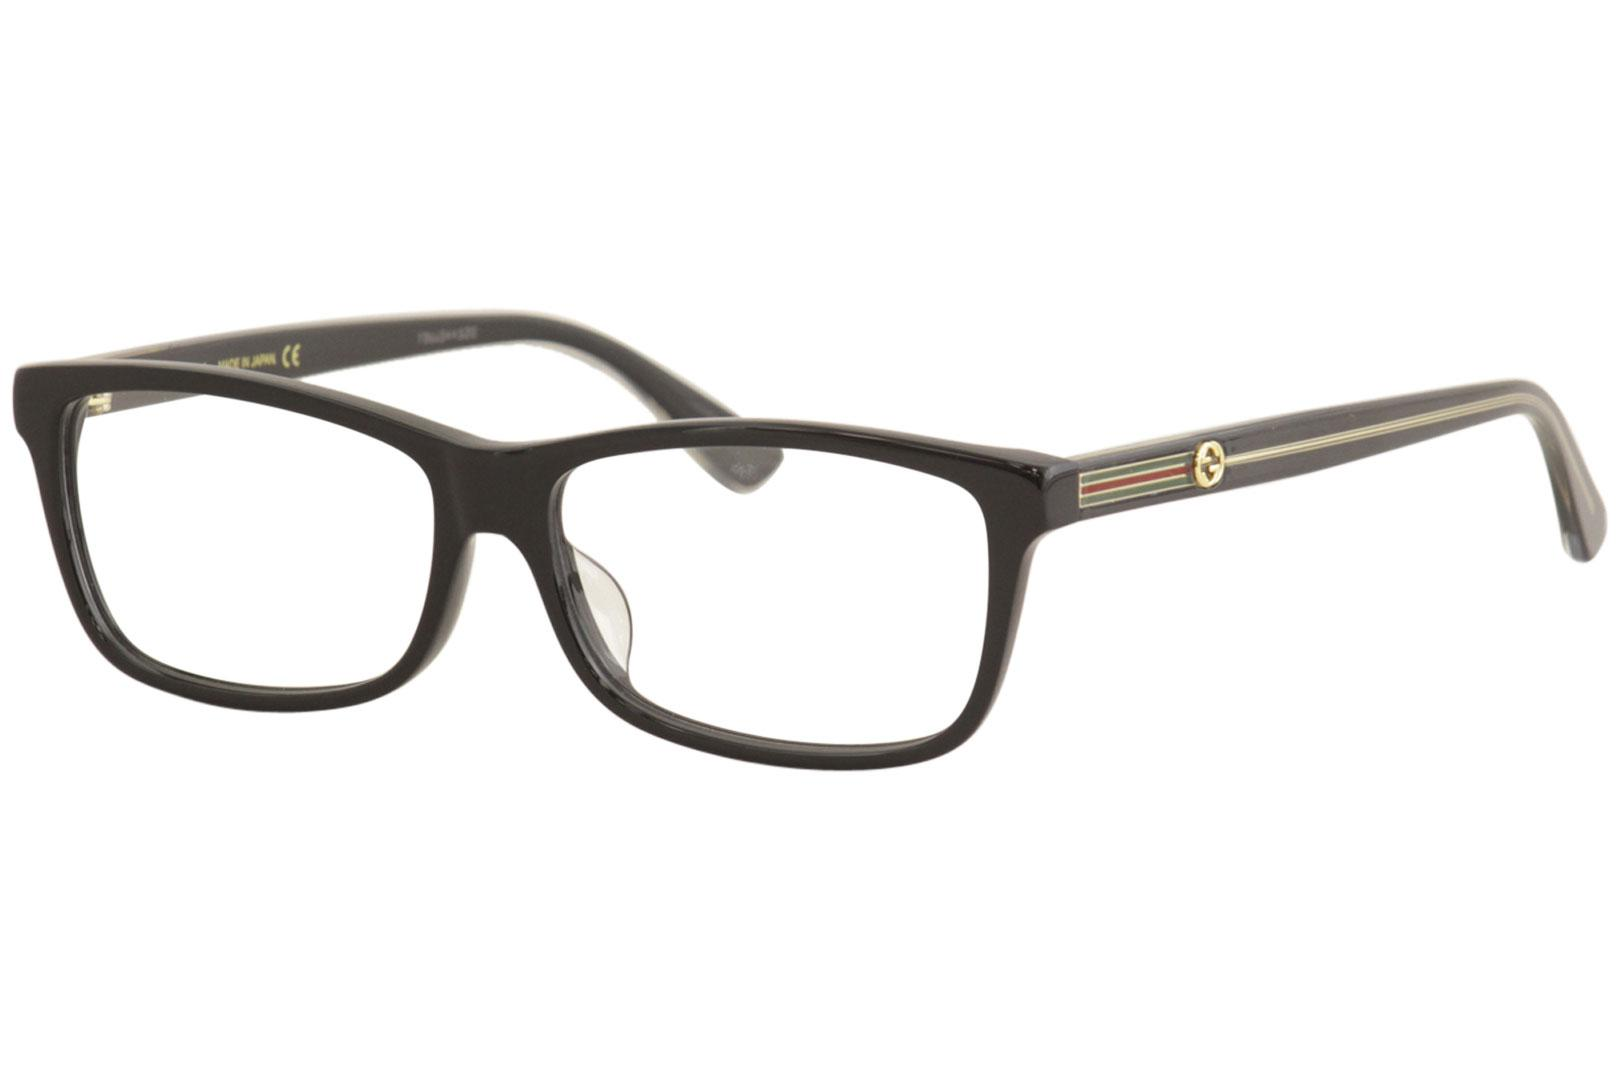 Image of - Black/Gold/Green/Red   001 - Lens 55 Bridge 14 Temple 145mm (Asian Fit)